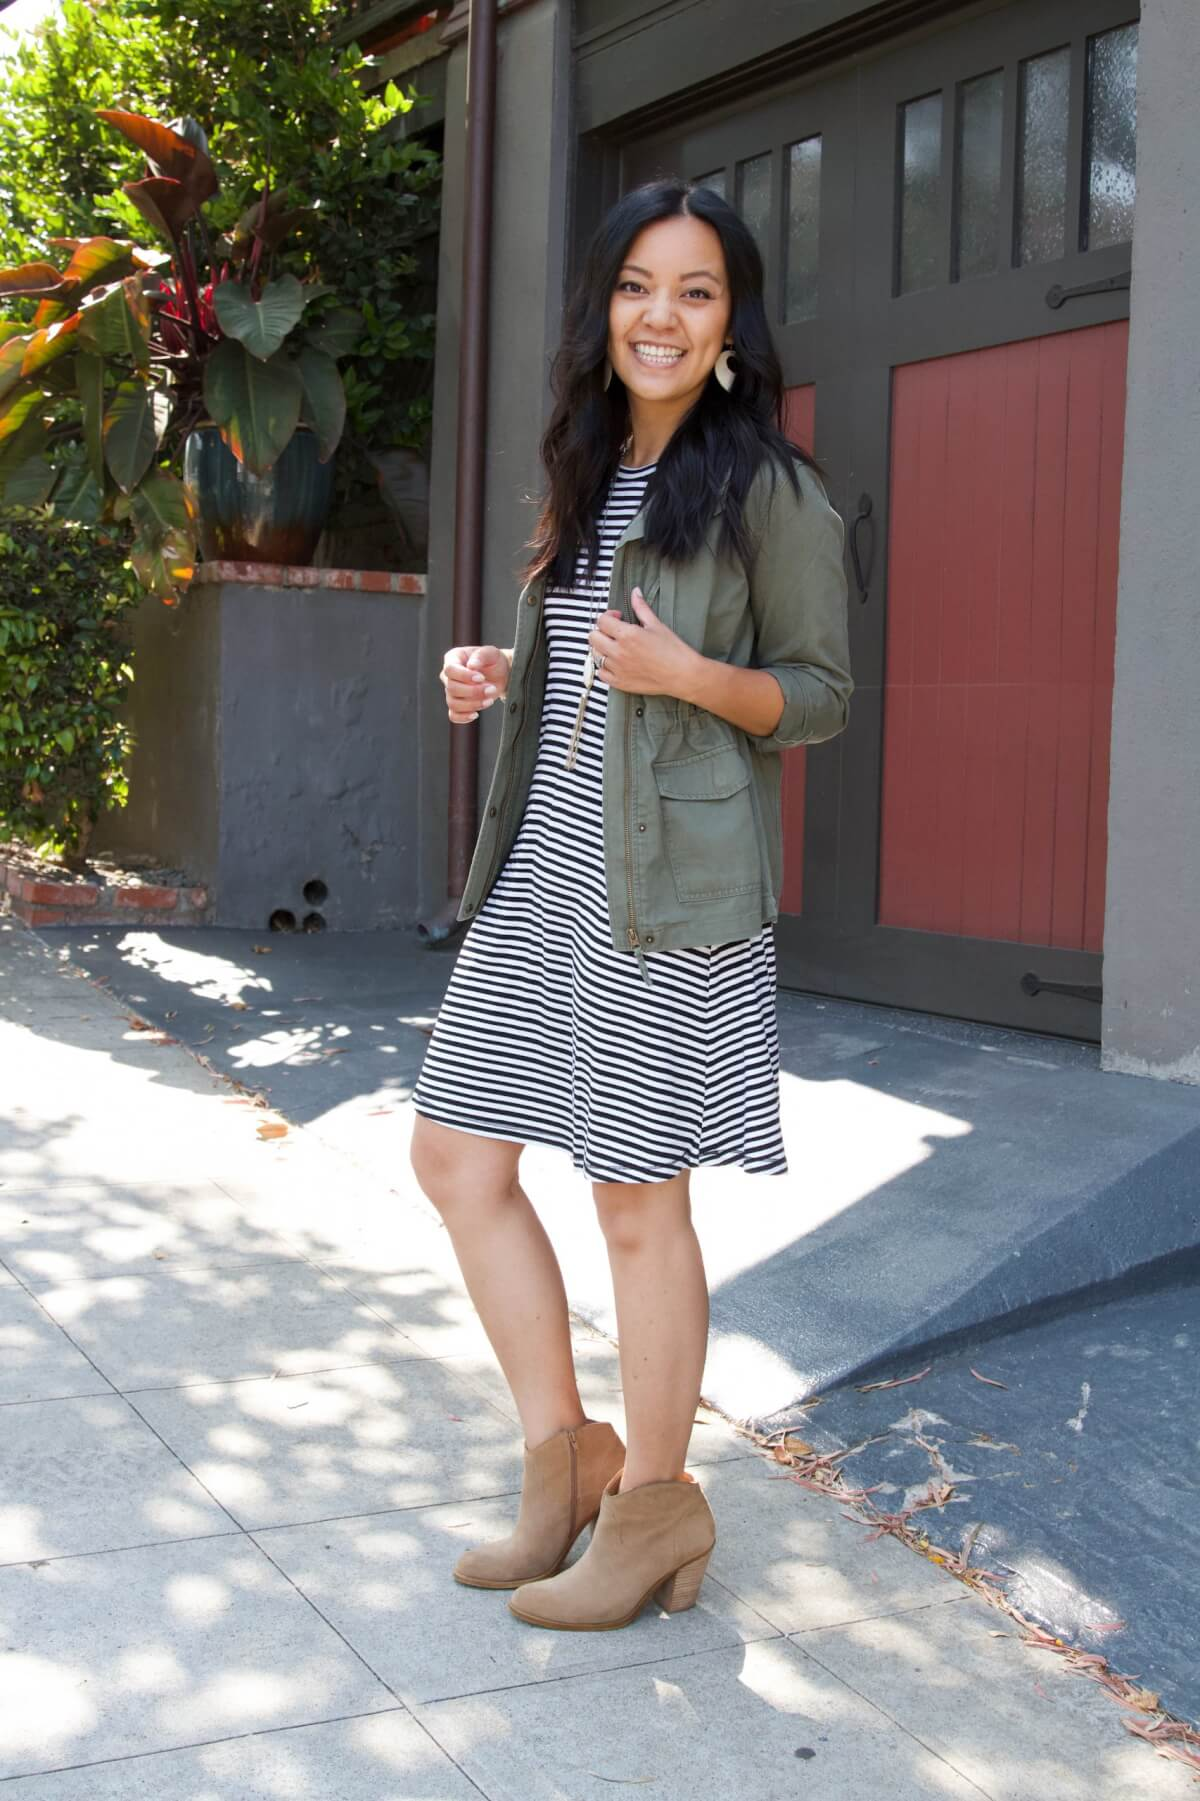 Summer to Fall Transition Nicer Casual Outfit: black and white striped dress + suede booties + olive utility jacket + white earrings + pendant tassel necklace